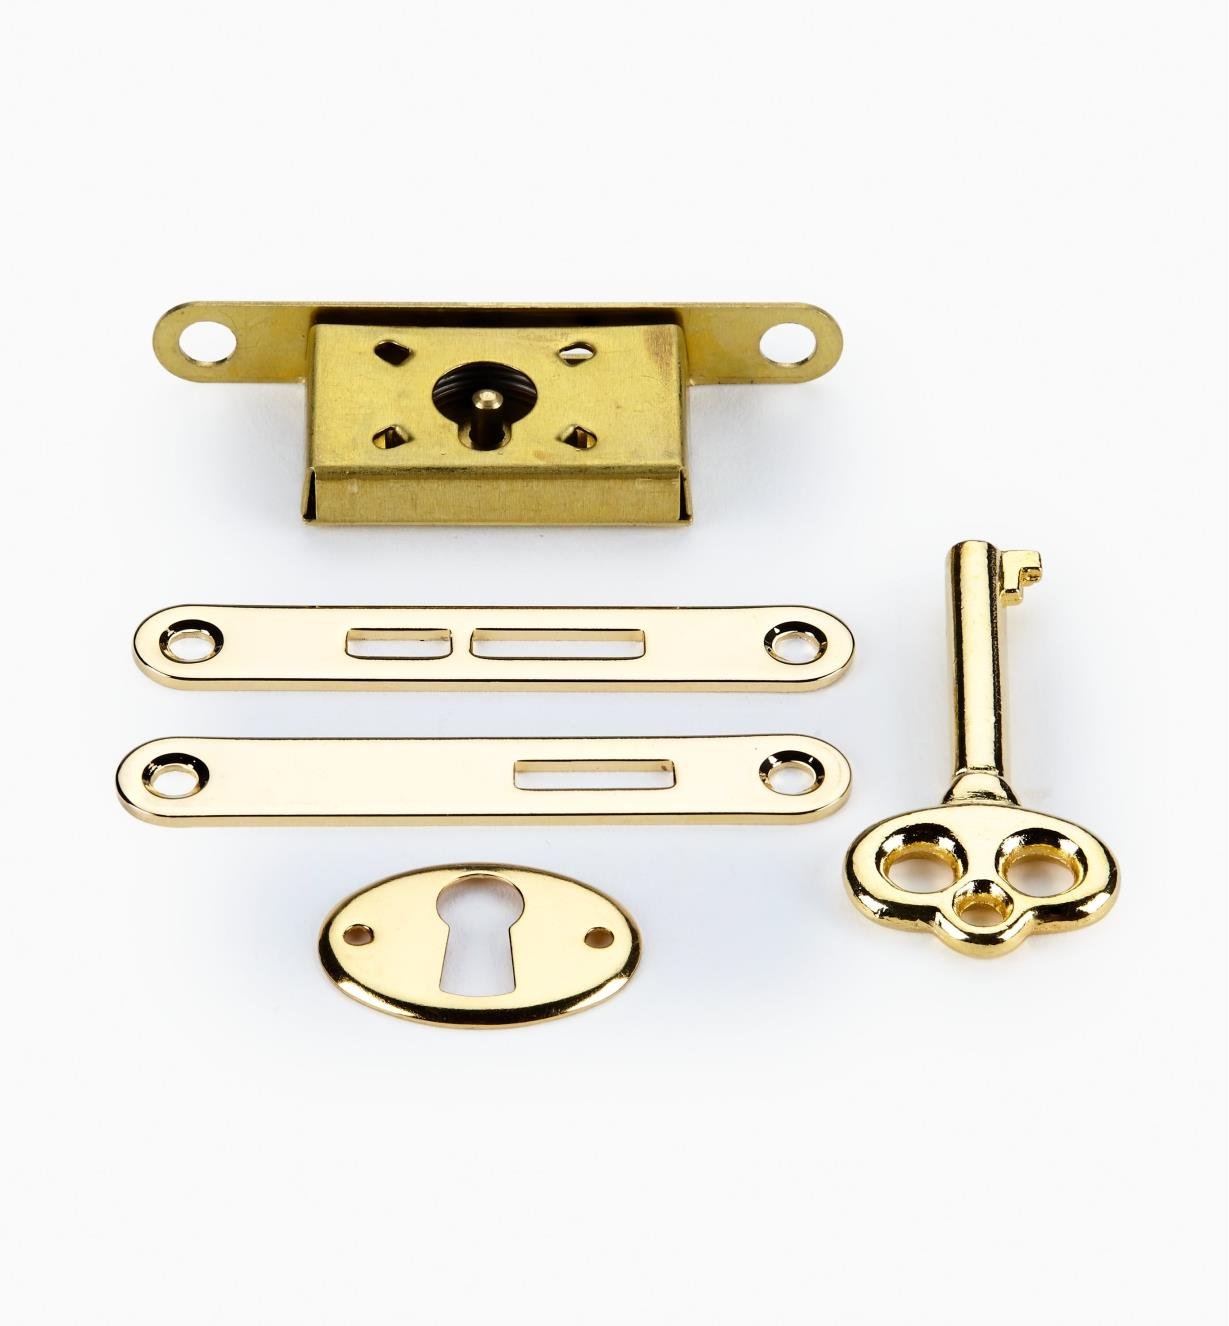 00L1401 - Cigar Box Lock